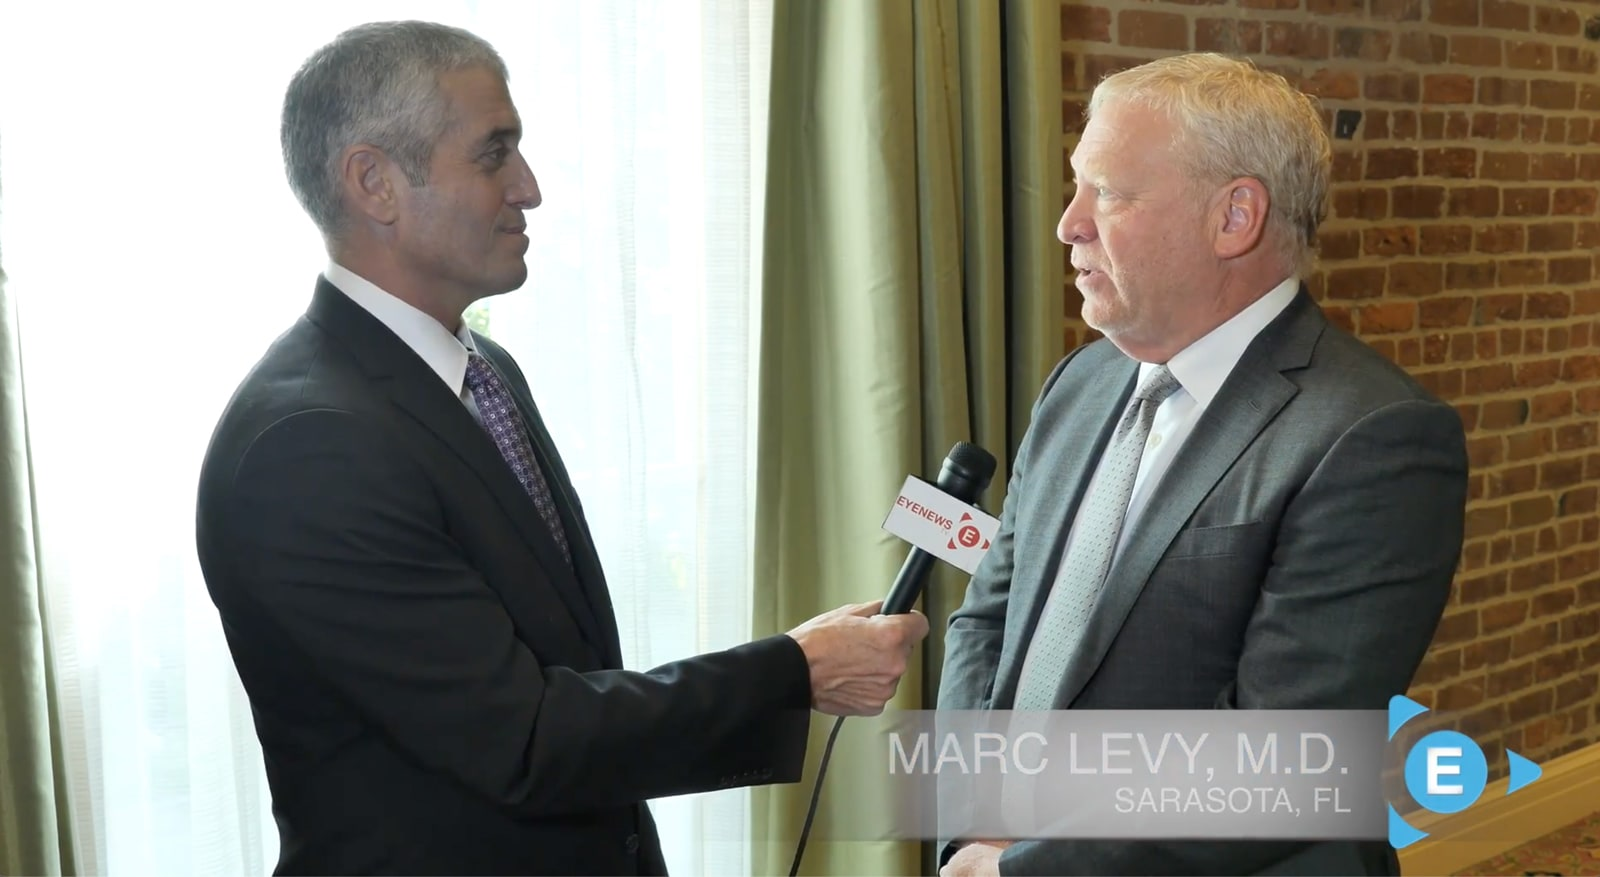 Dr. Marc Levy, MD Talks About His Grandmother's Experience with AMD